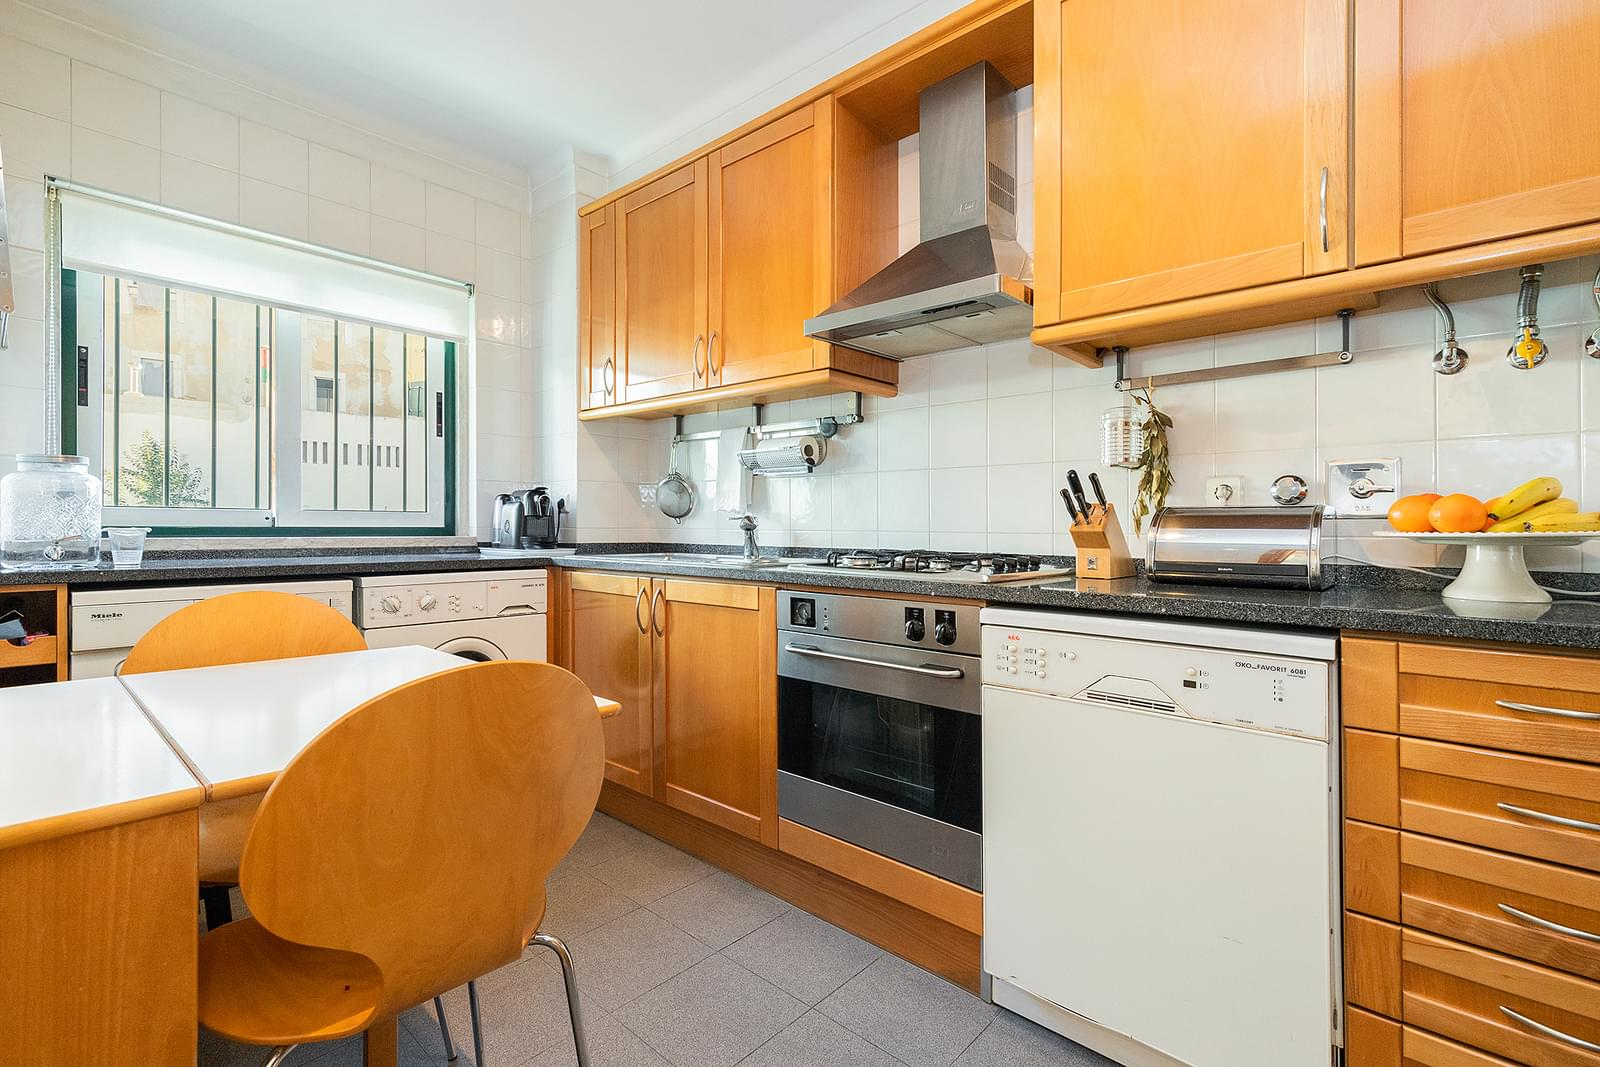 2 bedroom apartment with parking in gated community